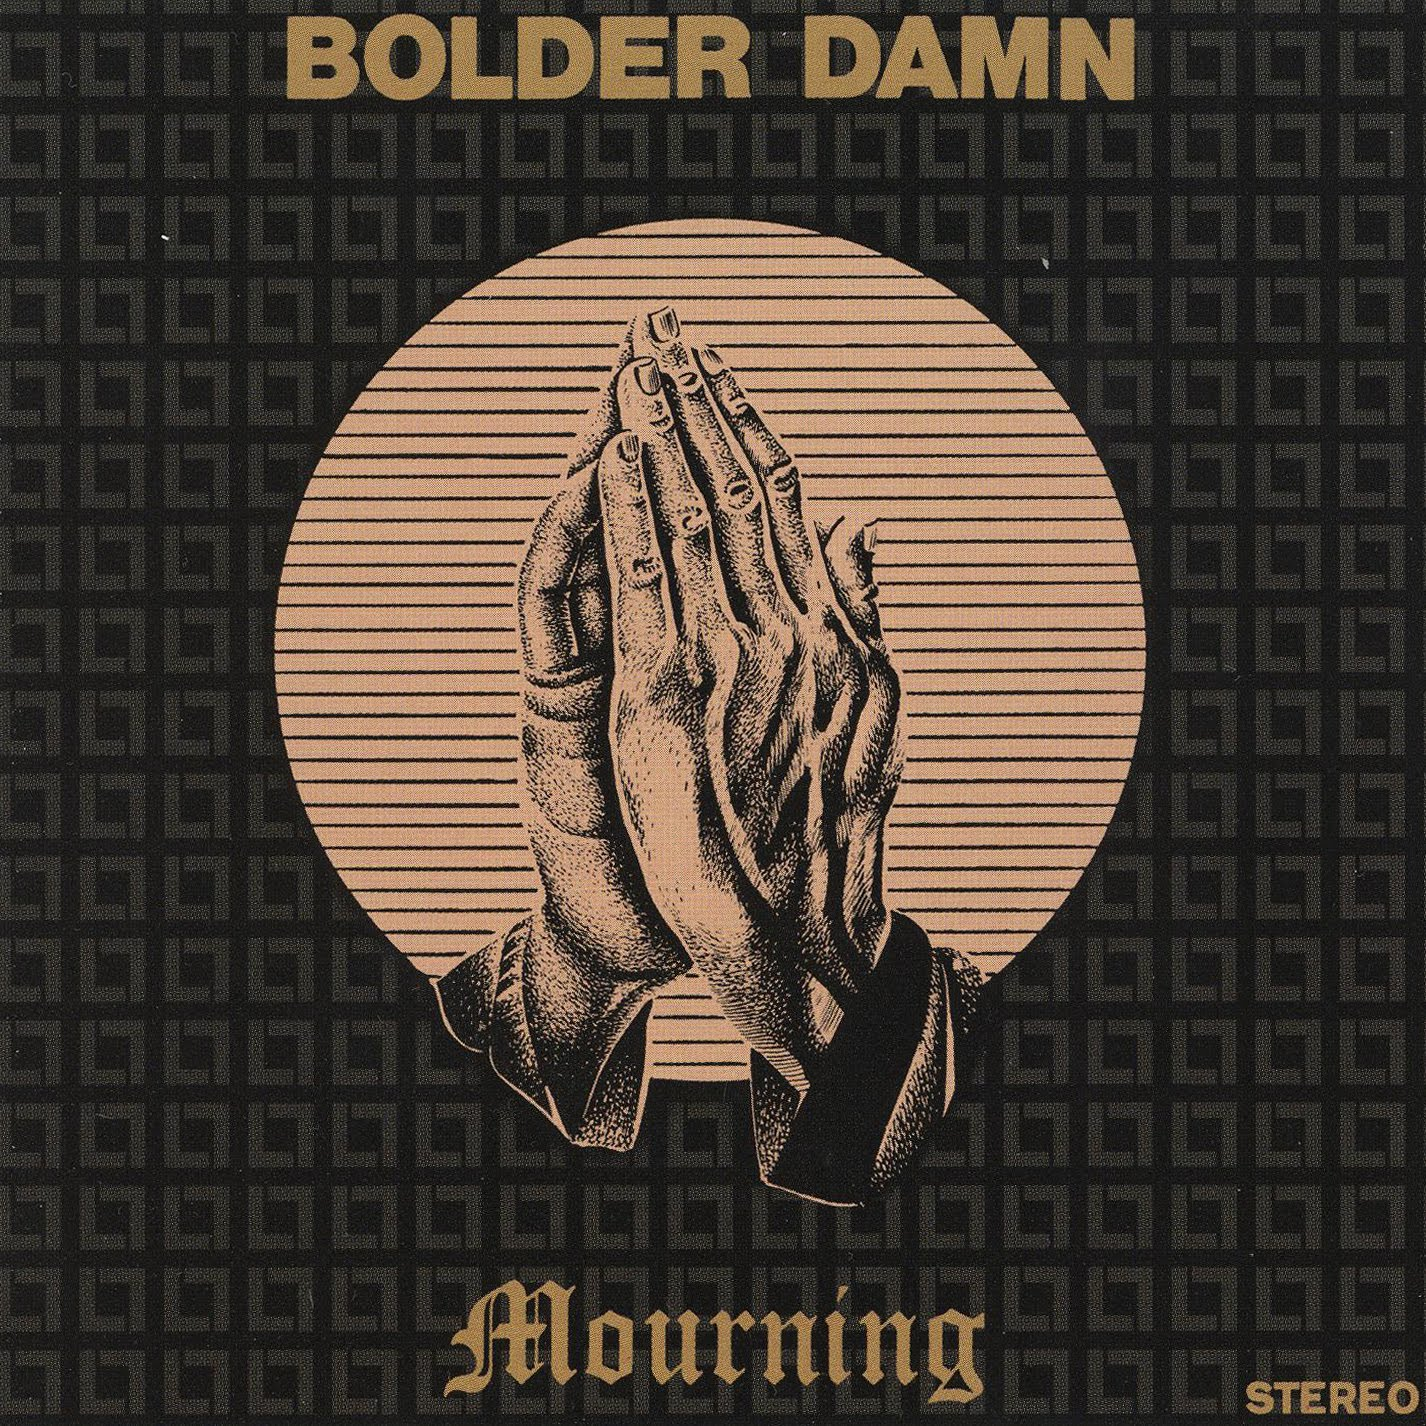 Bolder Damn's album is now a collector's item.